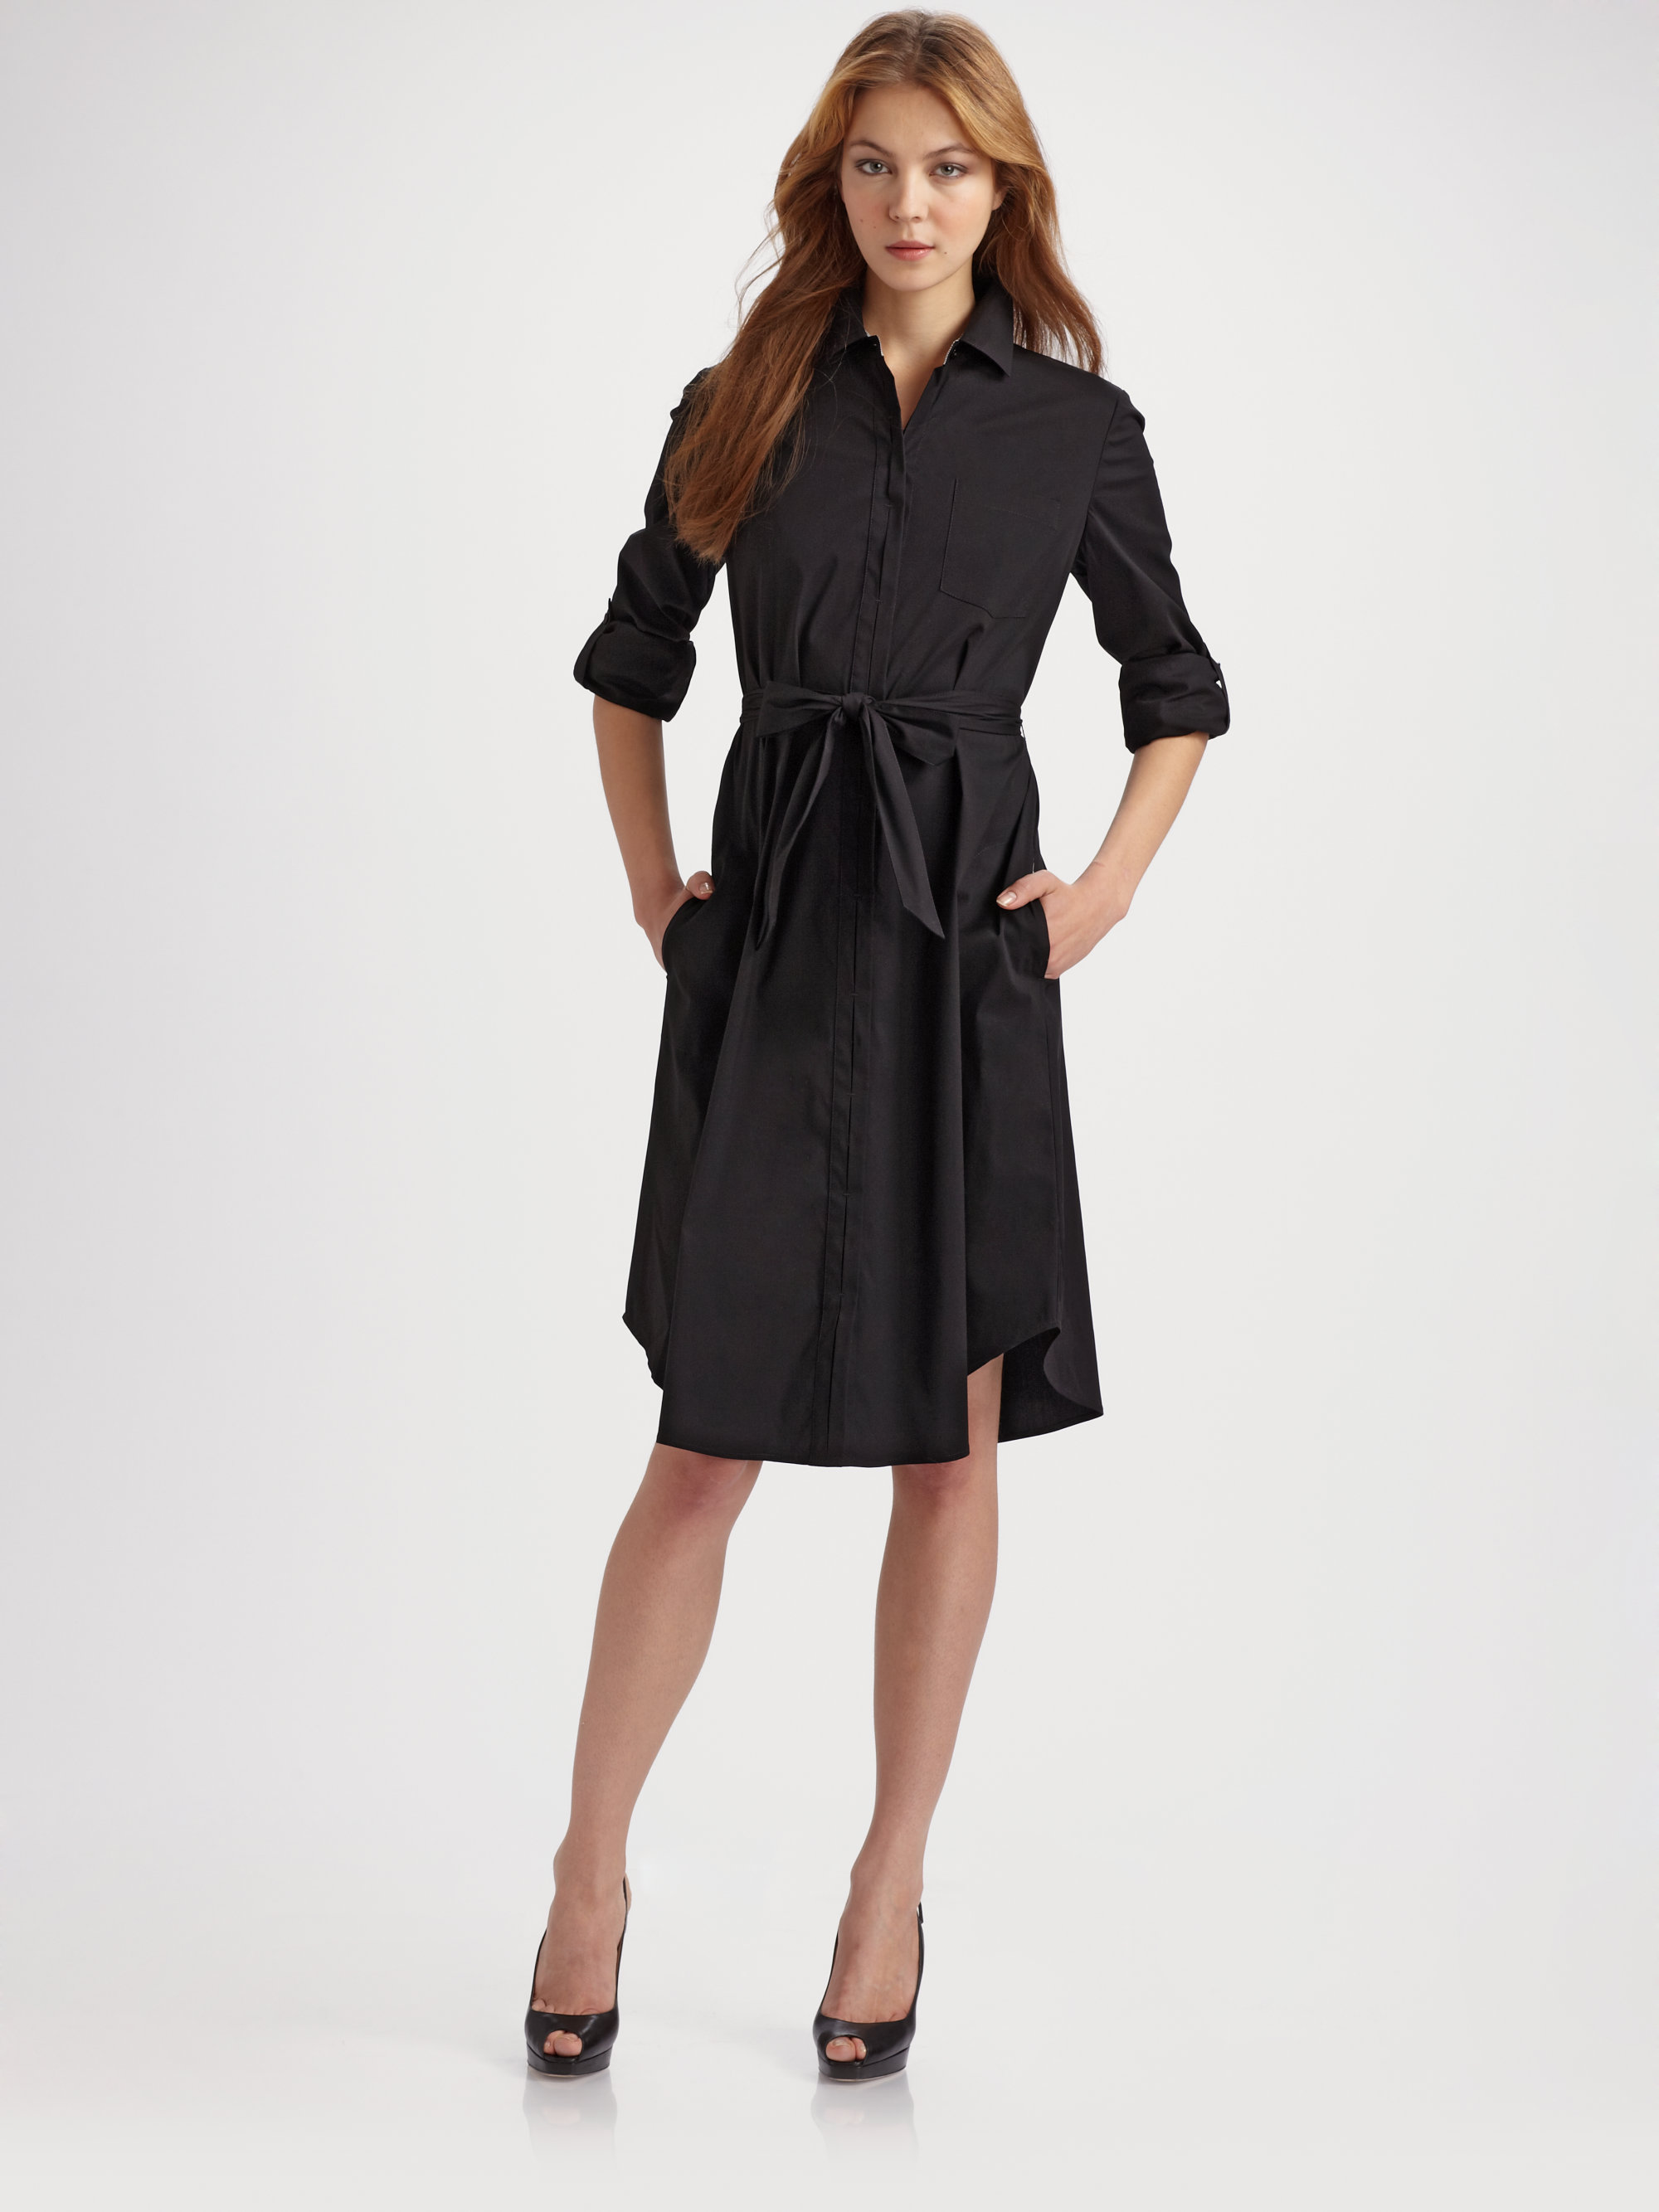 Lafayette 148 new york stretchknit shirt dress in black lyst for New york and company dress shirts